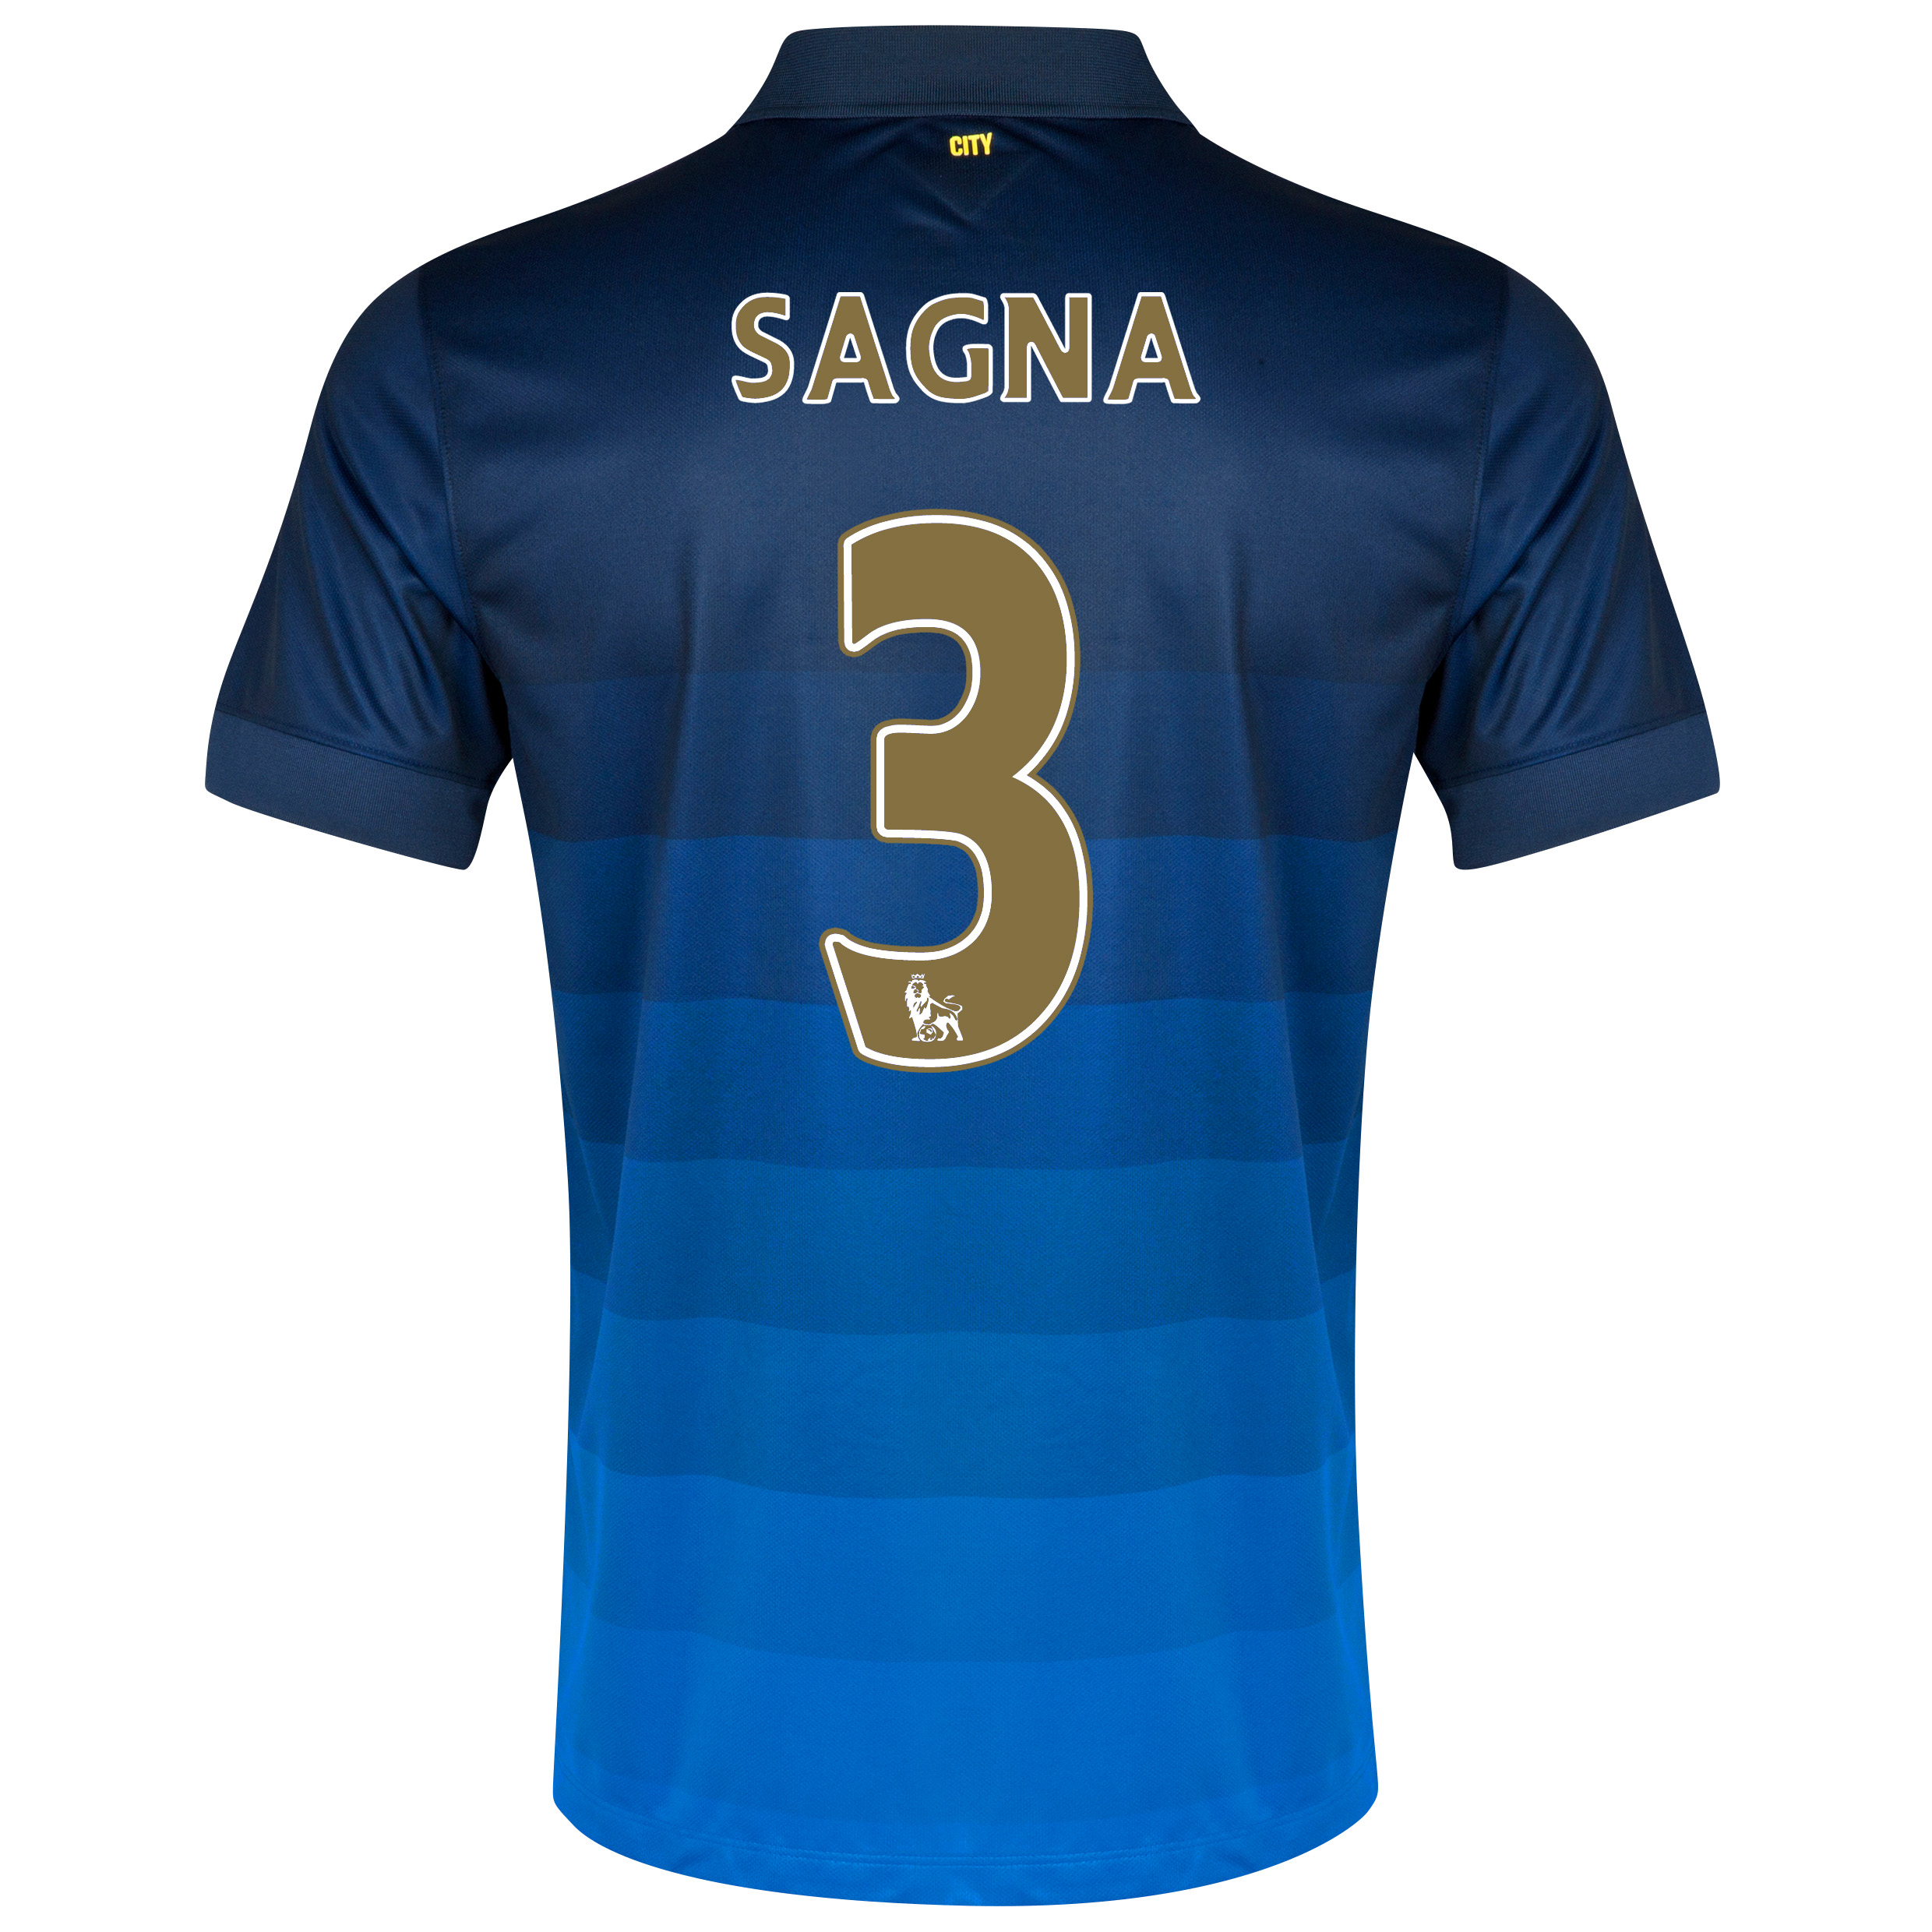 Manchester City Away Shirt 2014/15 with Sagna 3 printing